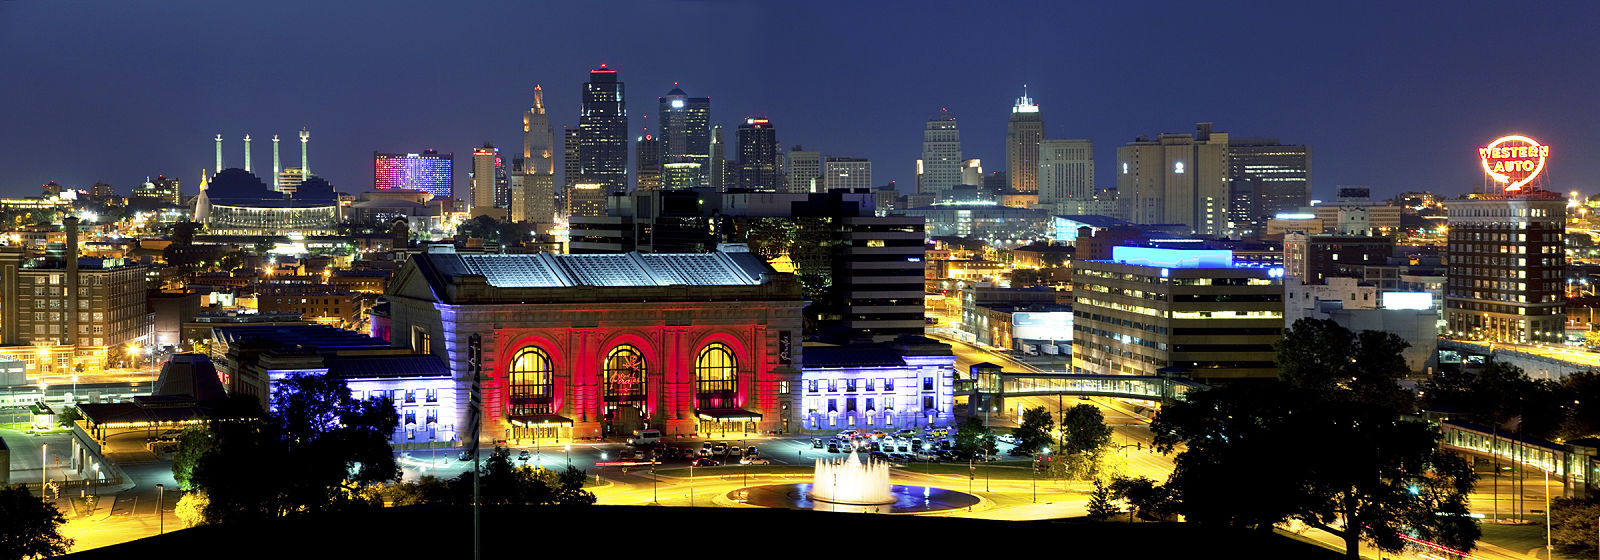 Kc_home_page_photo_1600x560